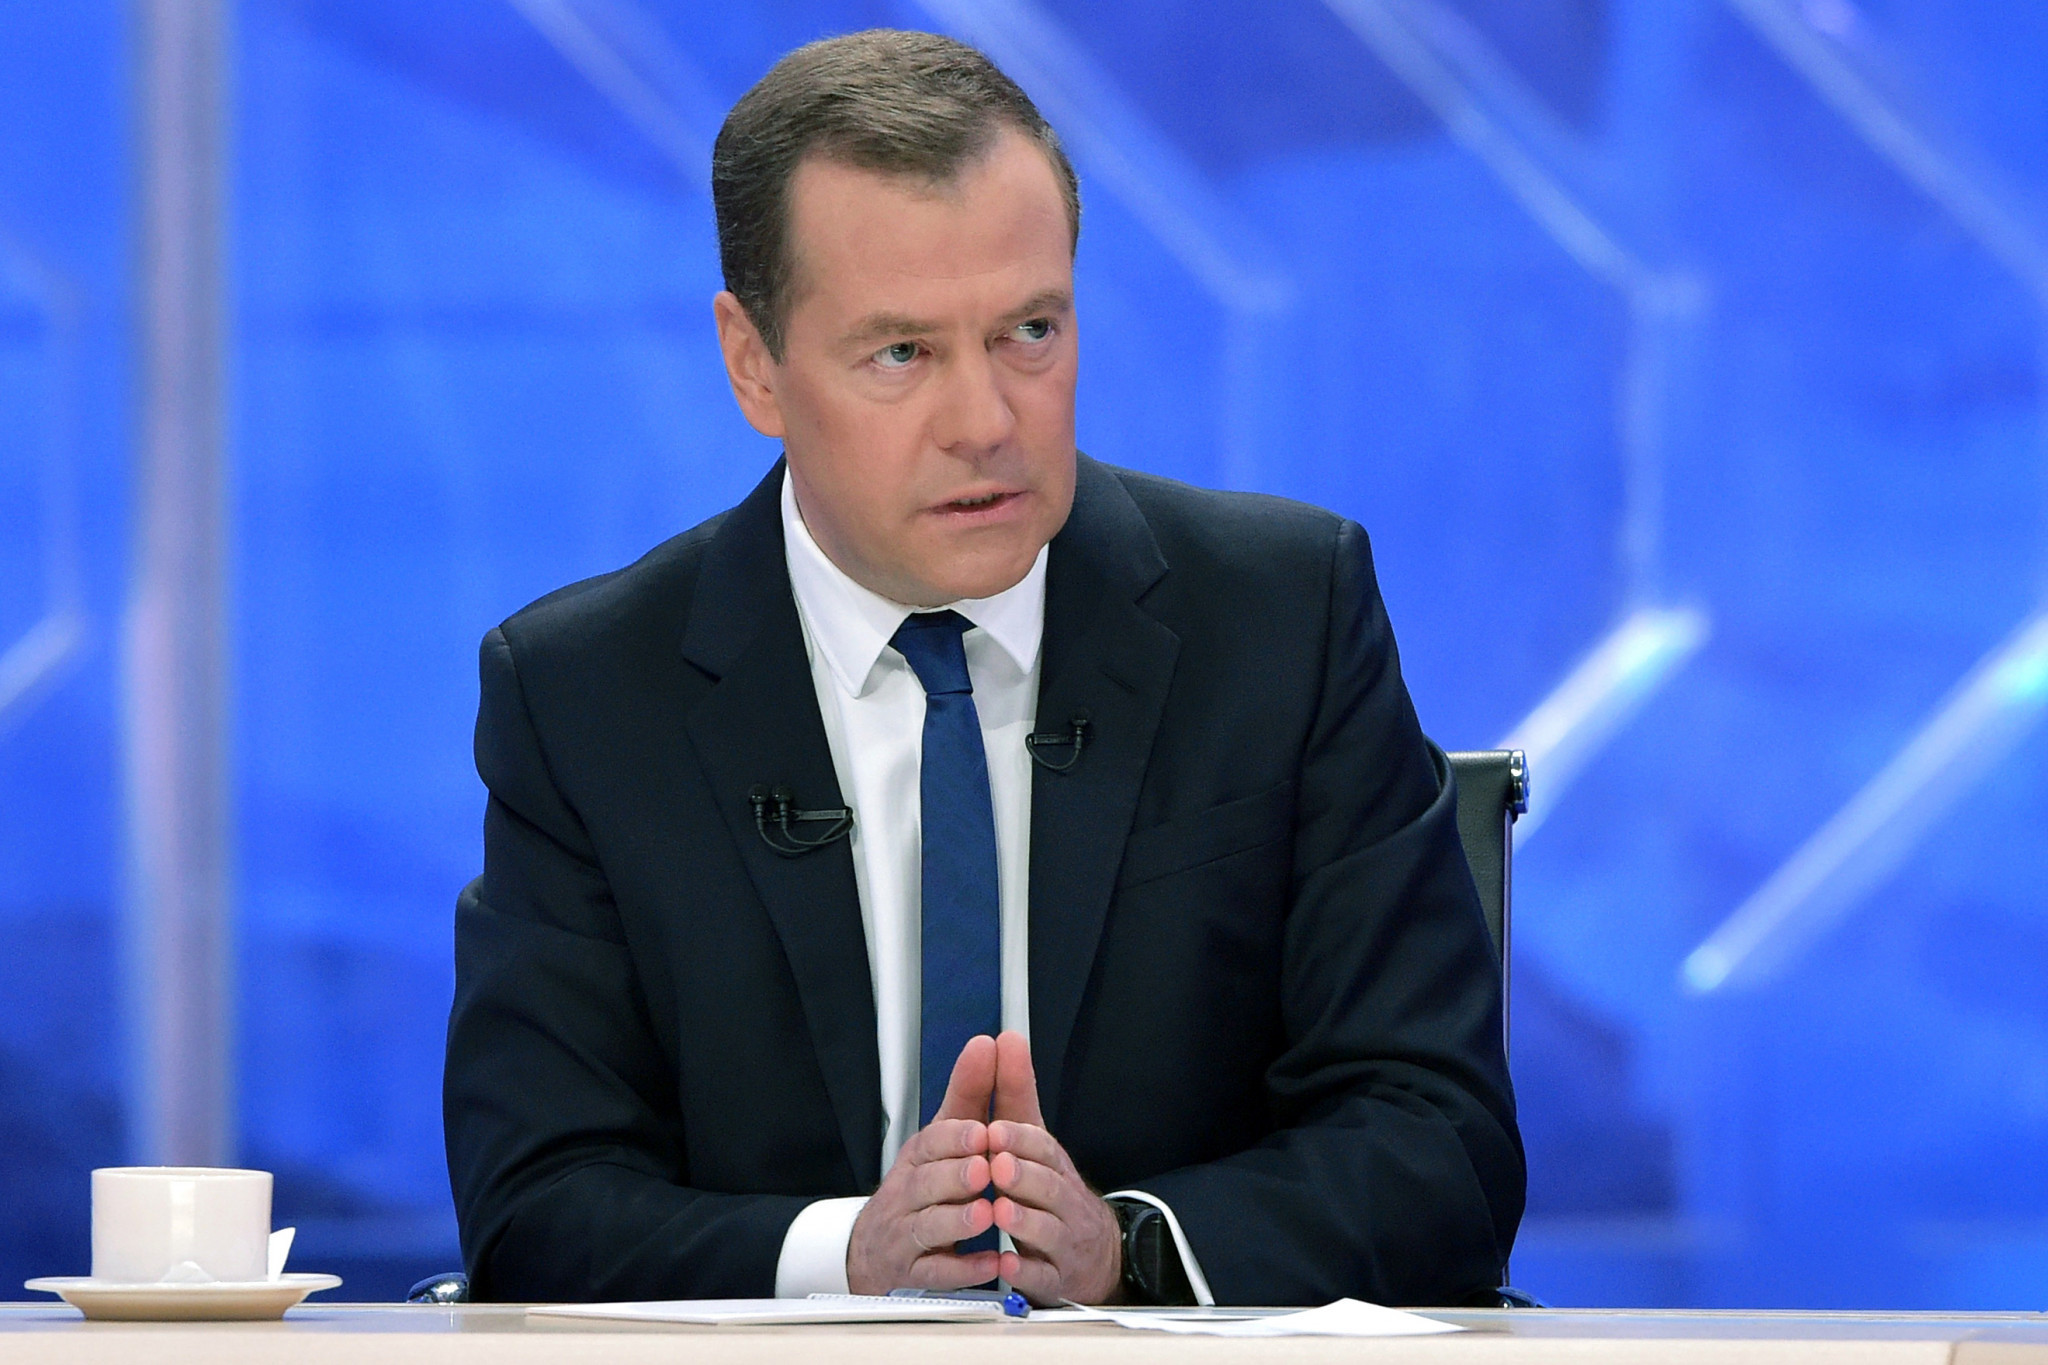 Dmitry Medvedev confirmed there would be a competition for athletes banned from Pyeongchang 2018 ©Getty Images